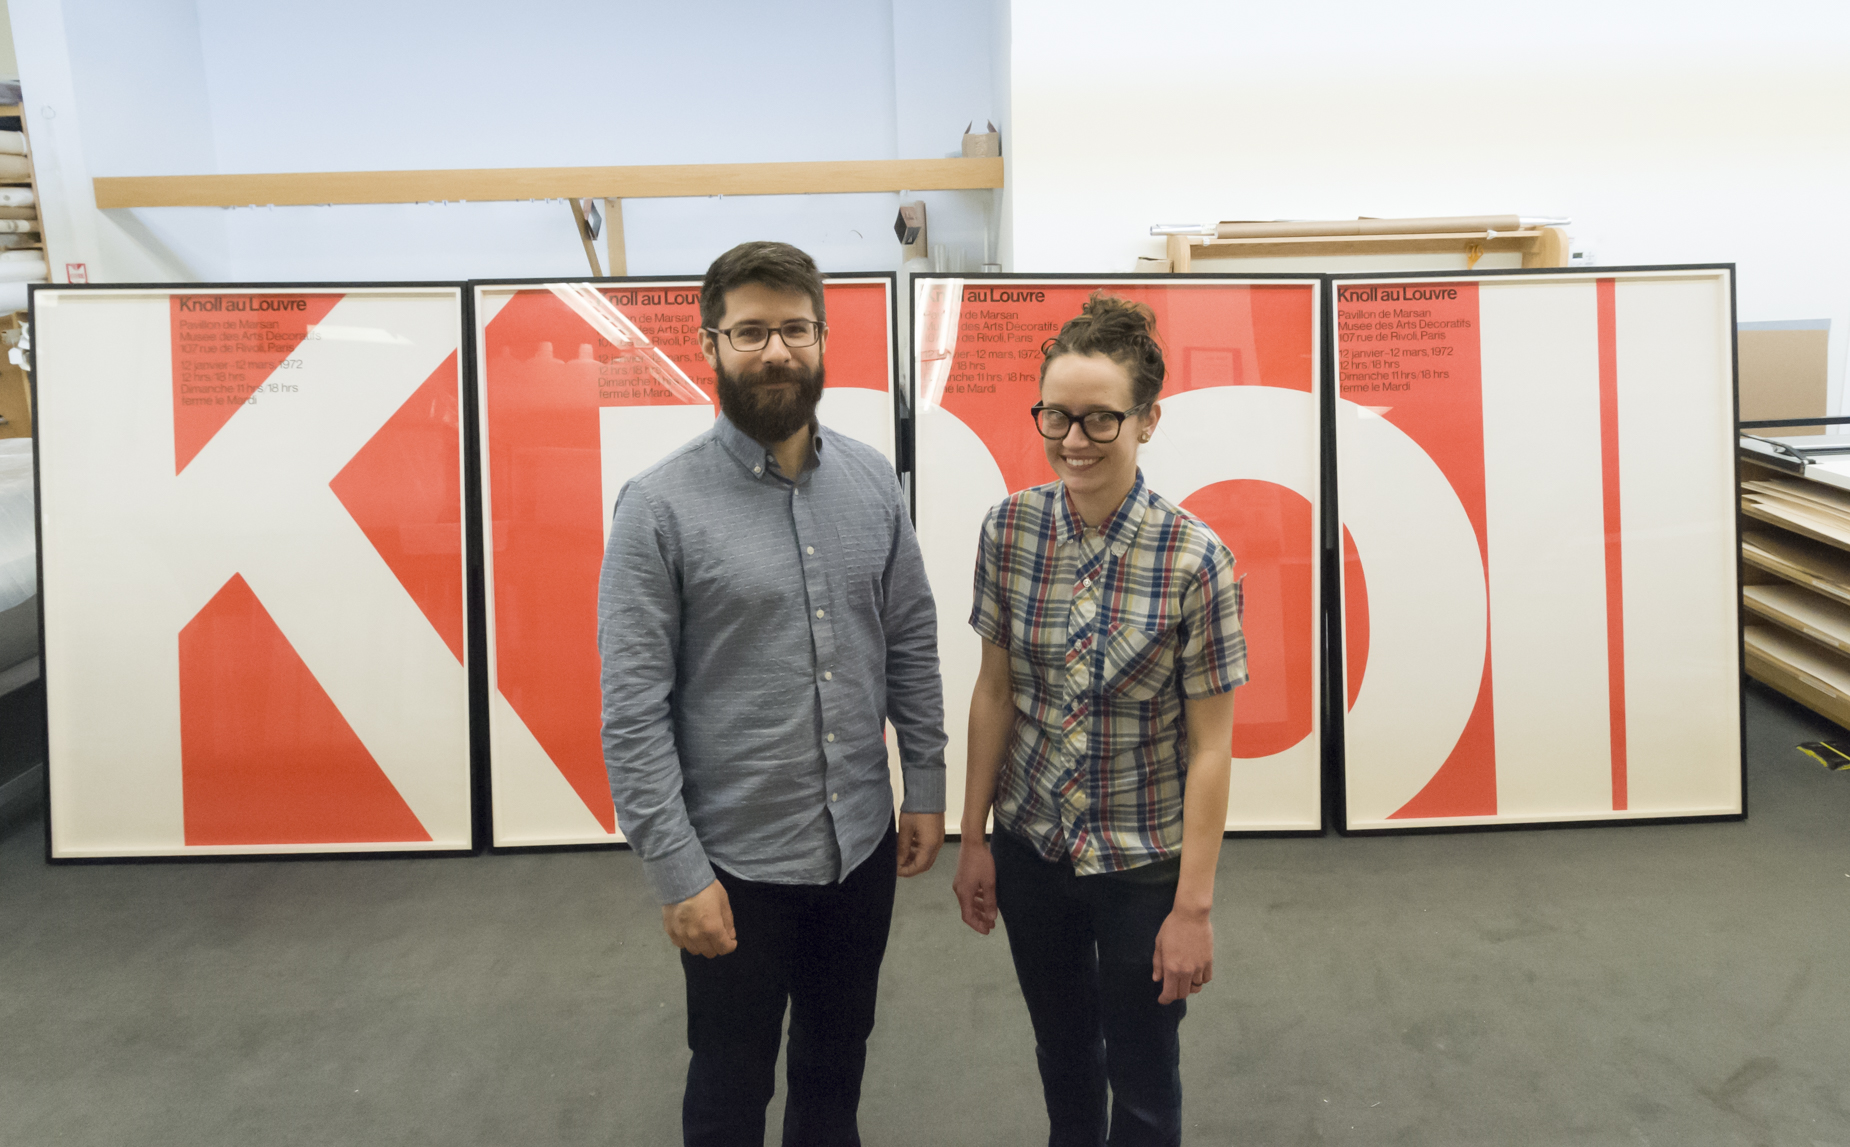 Conservation staff pose in front of framed Knoll posters